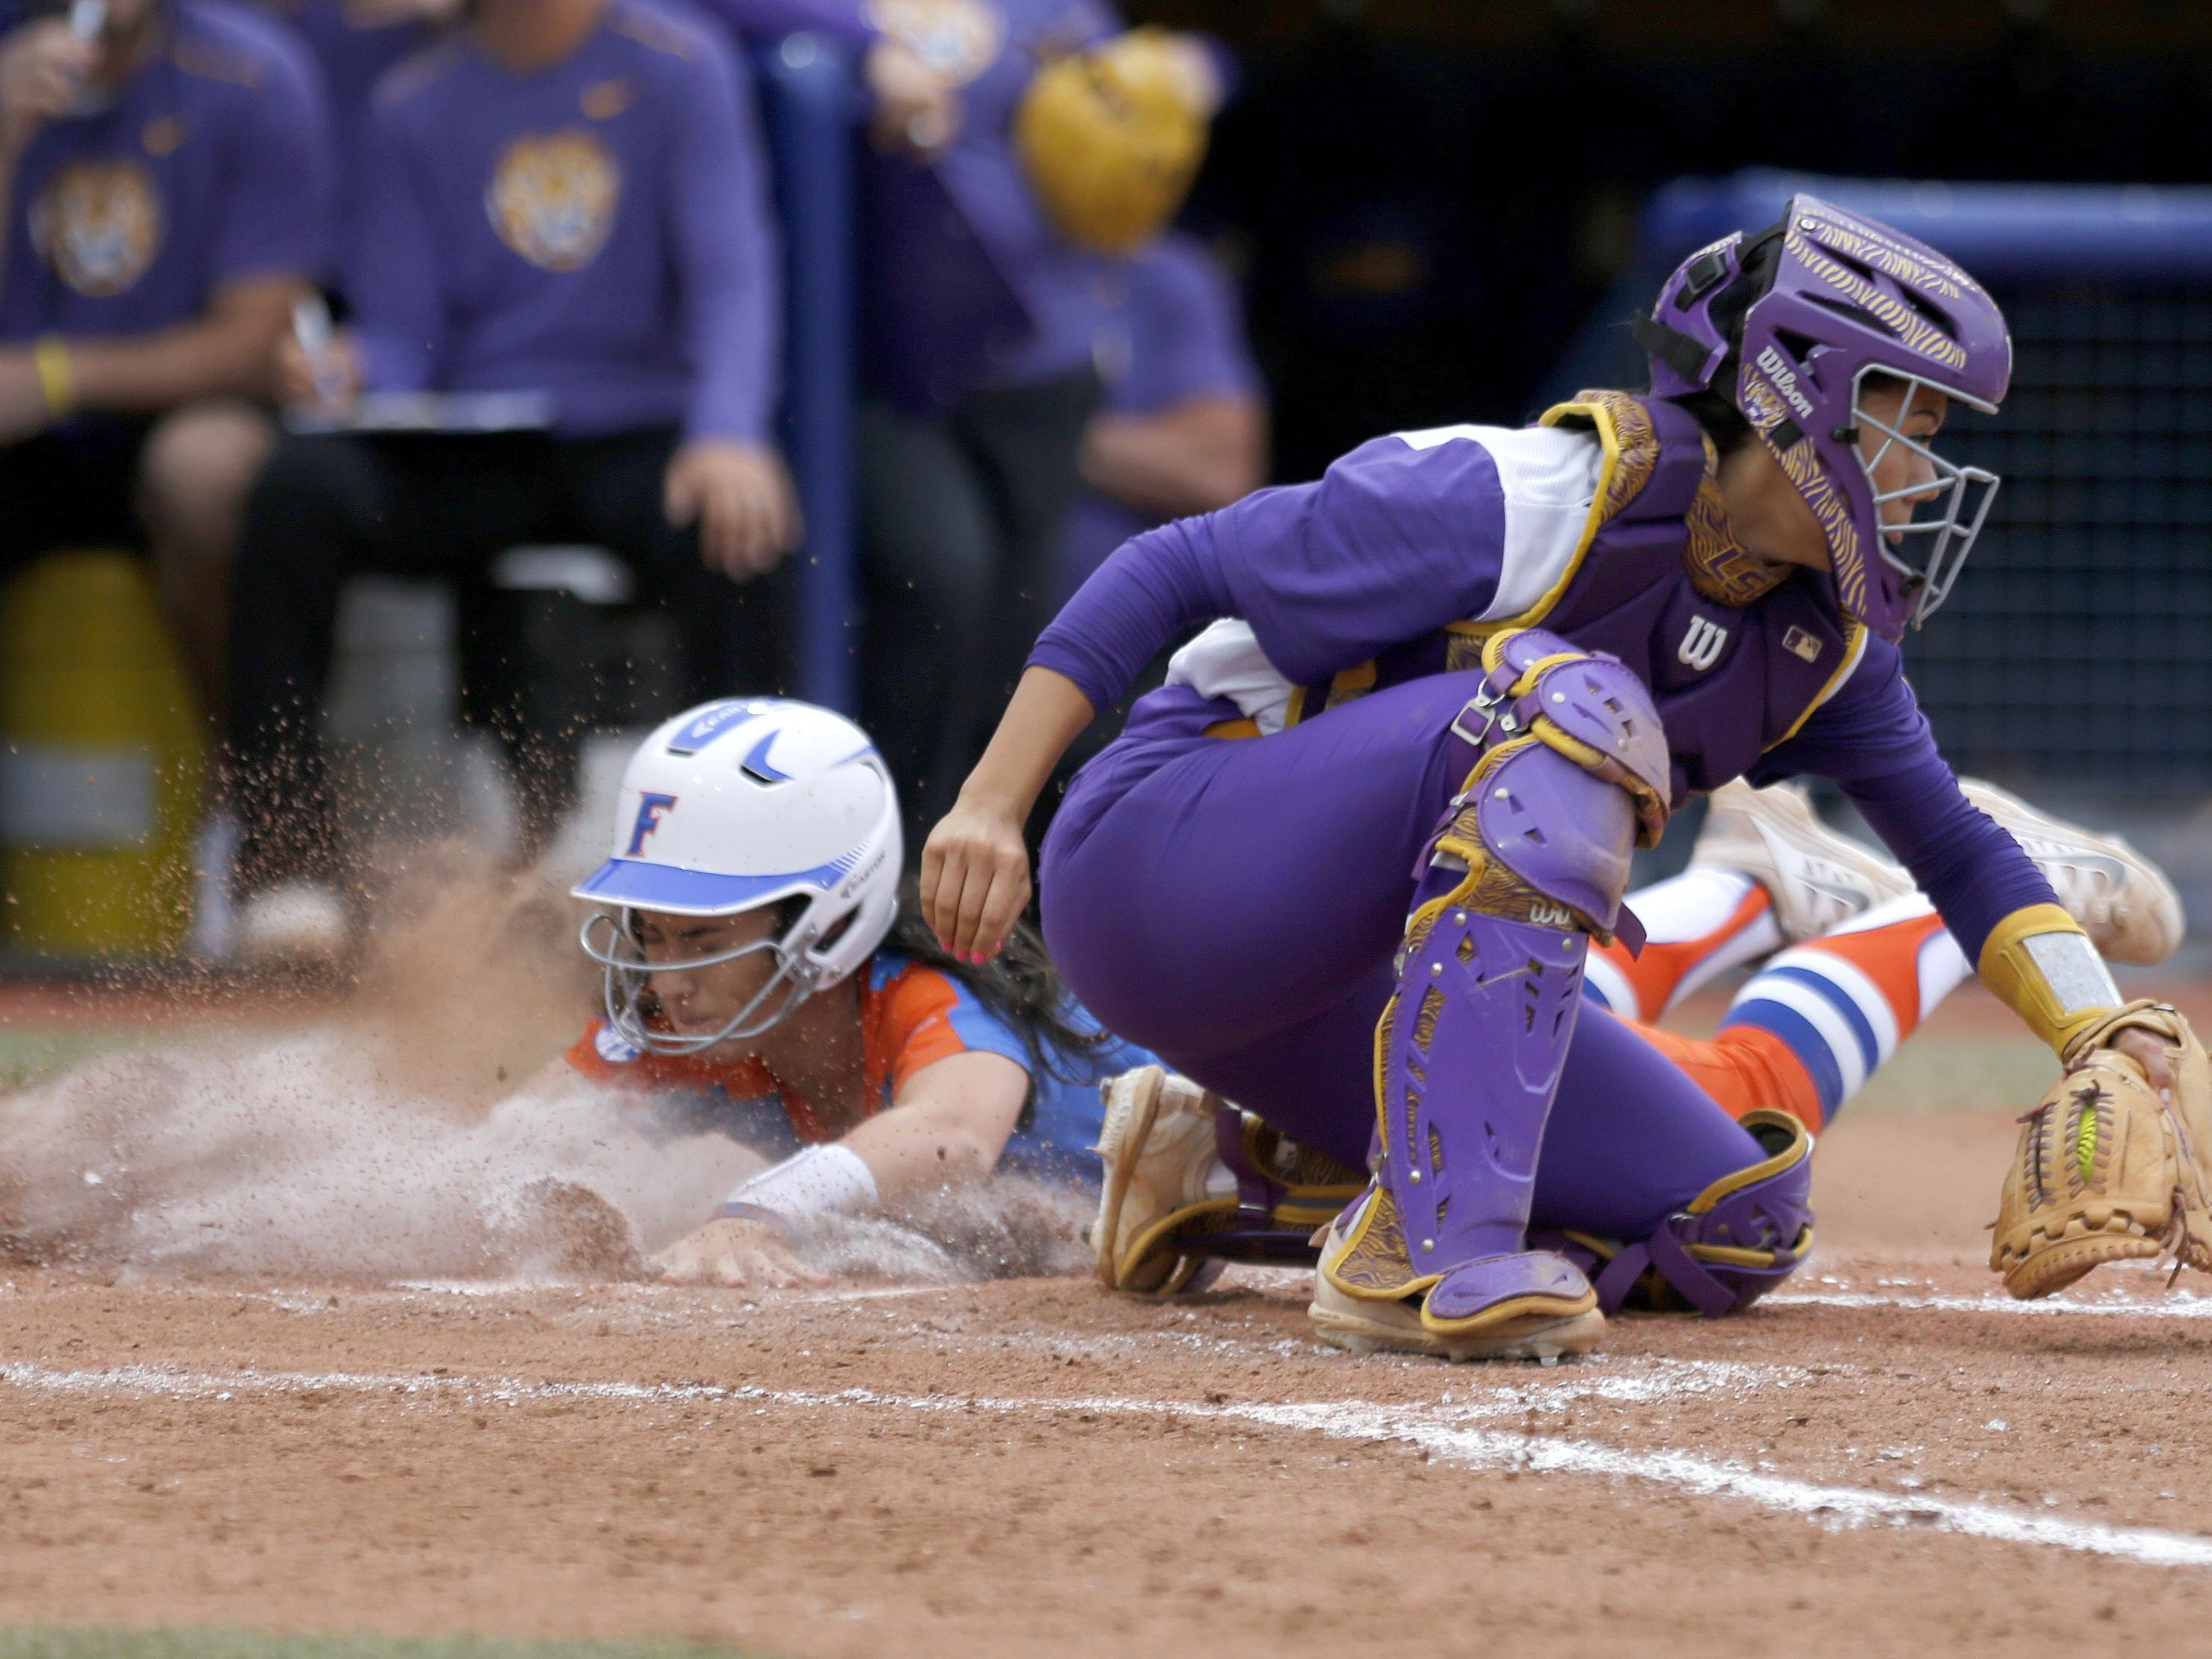 Florida's Alex Voss (0) slides into home as LSU's Sahvanna Jaquish (2) waits to apply a the tag in the fourth inning during the Women's College World Series softball game in Oklahoma City, Friday.